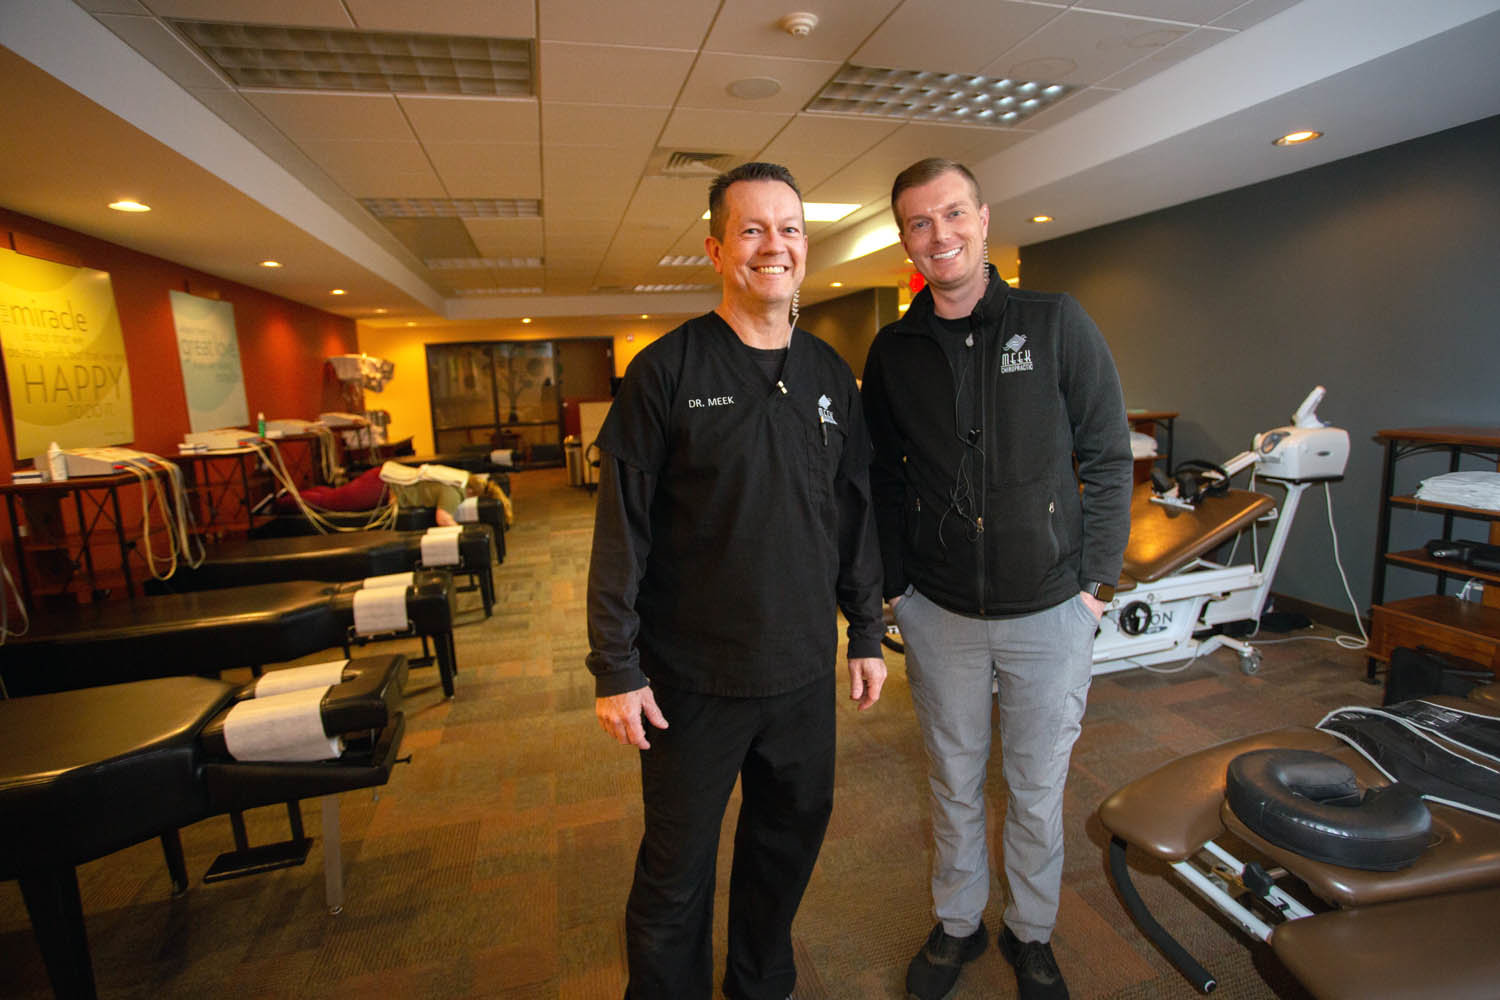 STRETCHING THE SERVICES: Dr. Gary Meek, left, is expanding his range of medical care with the launch of 180 Health, slated to open in early 2020, led by Clint Cunningham.